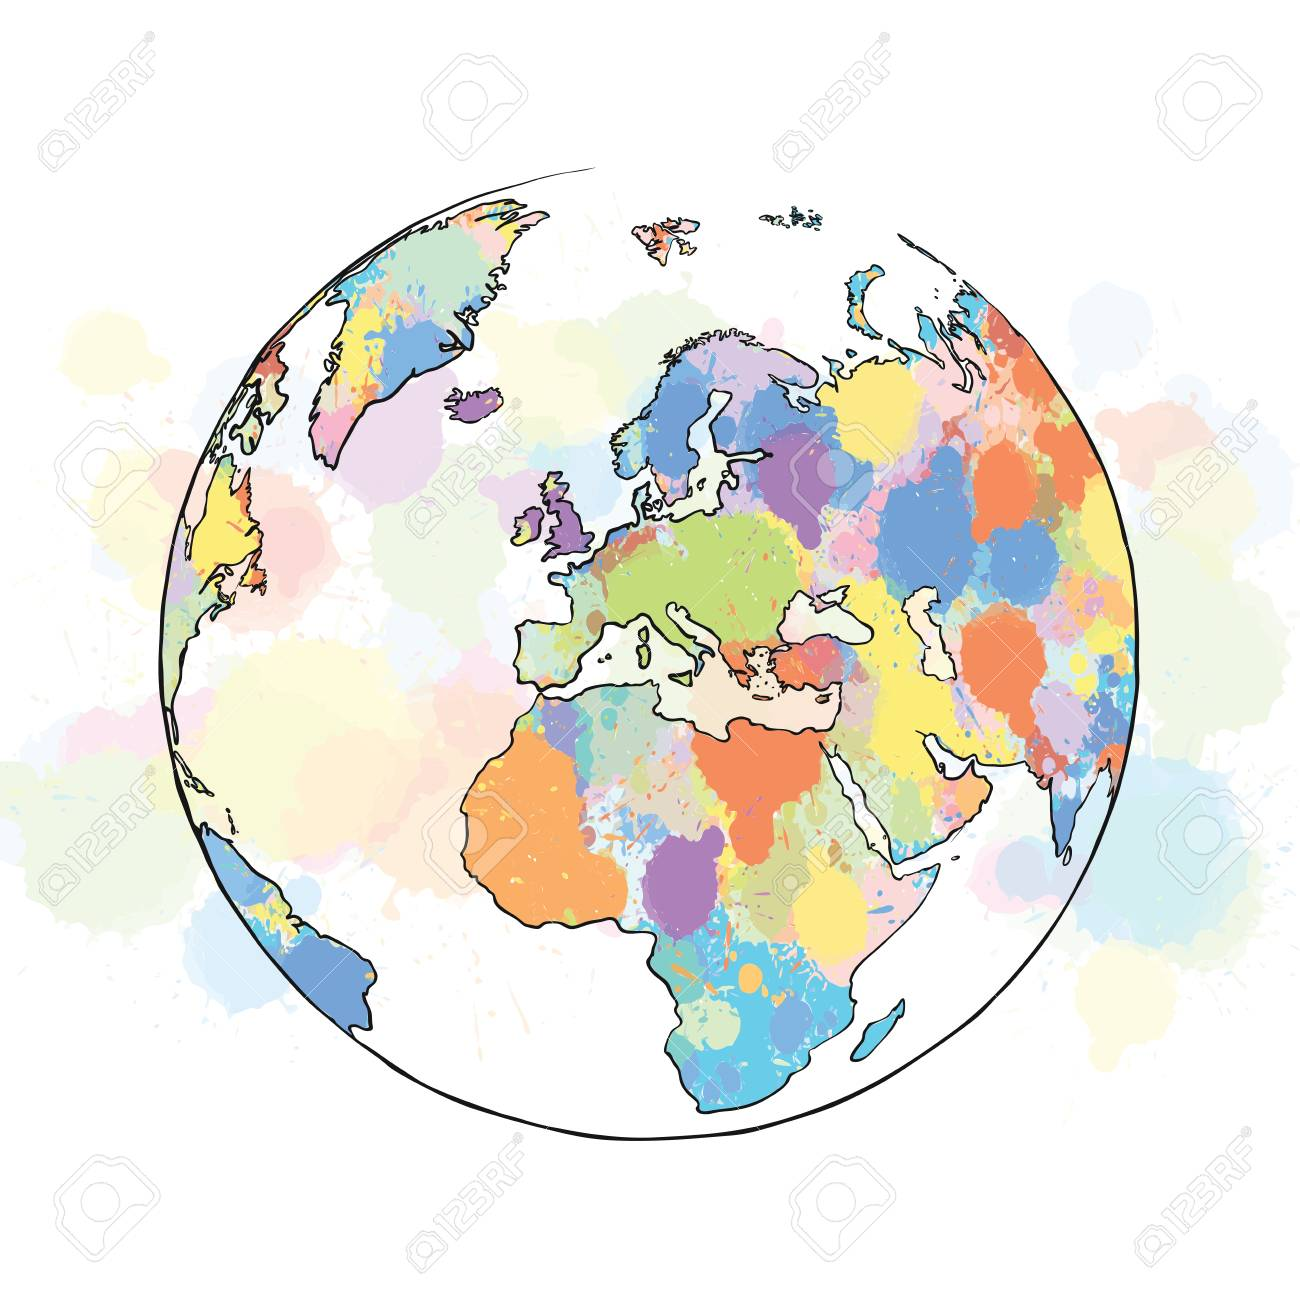 Colorful map europe globe hand drawn vector illustration paint colorful map europe globe hand drawn vector illustration paint splatter color isolated on white publicscrutiny Image collections